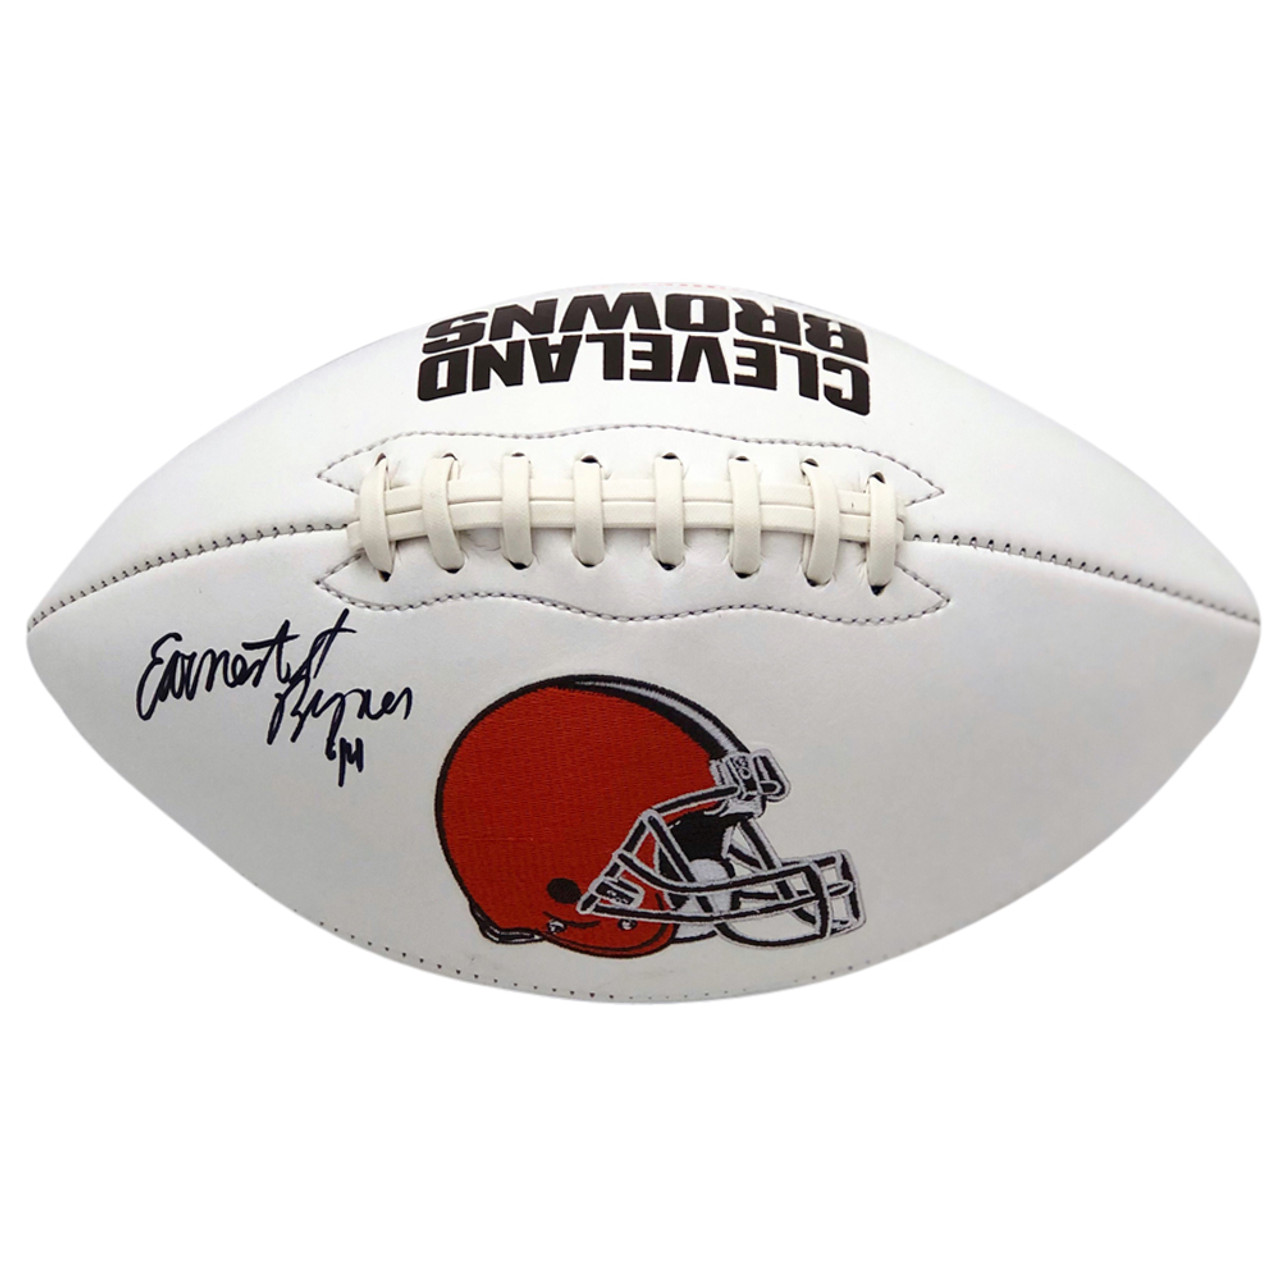 e1b47e4b8 Earnest Byner Cleveland Browns Autographed White Panel Football - Certified  Authentic